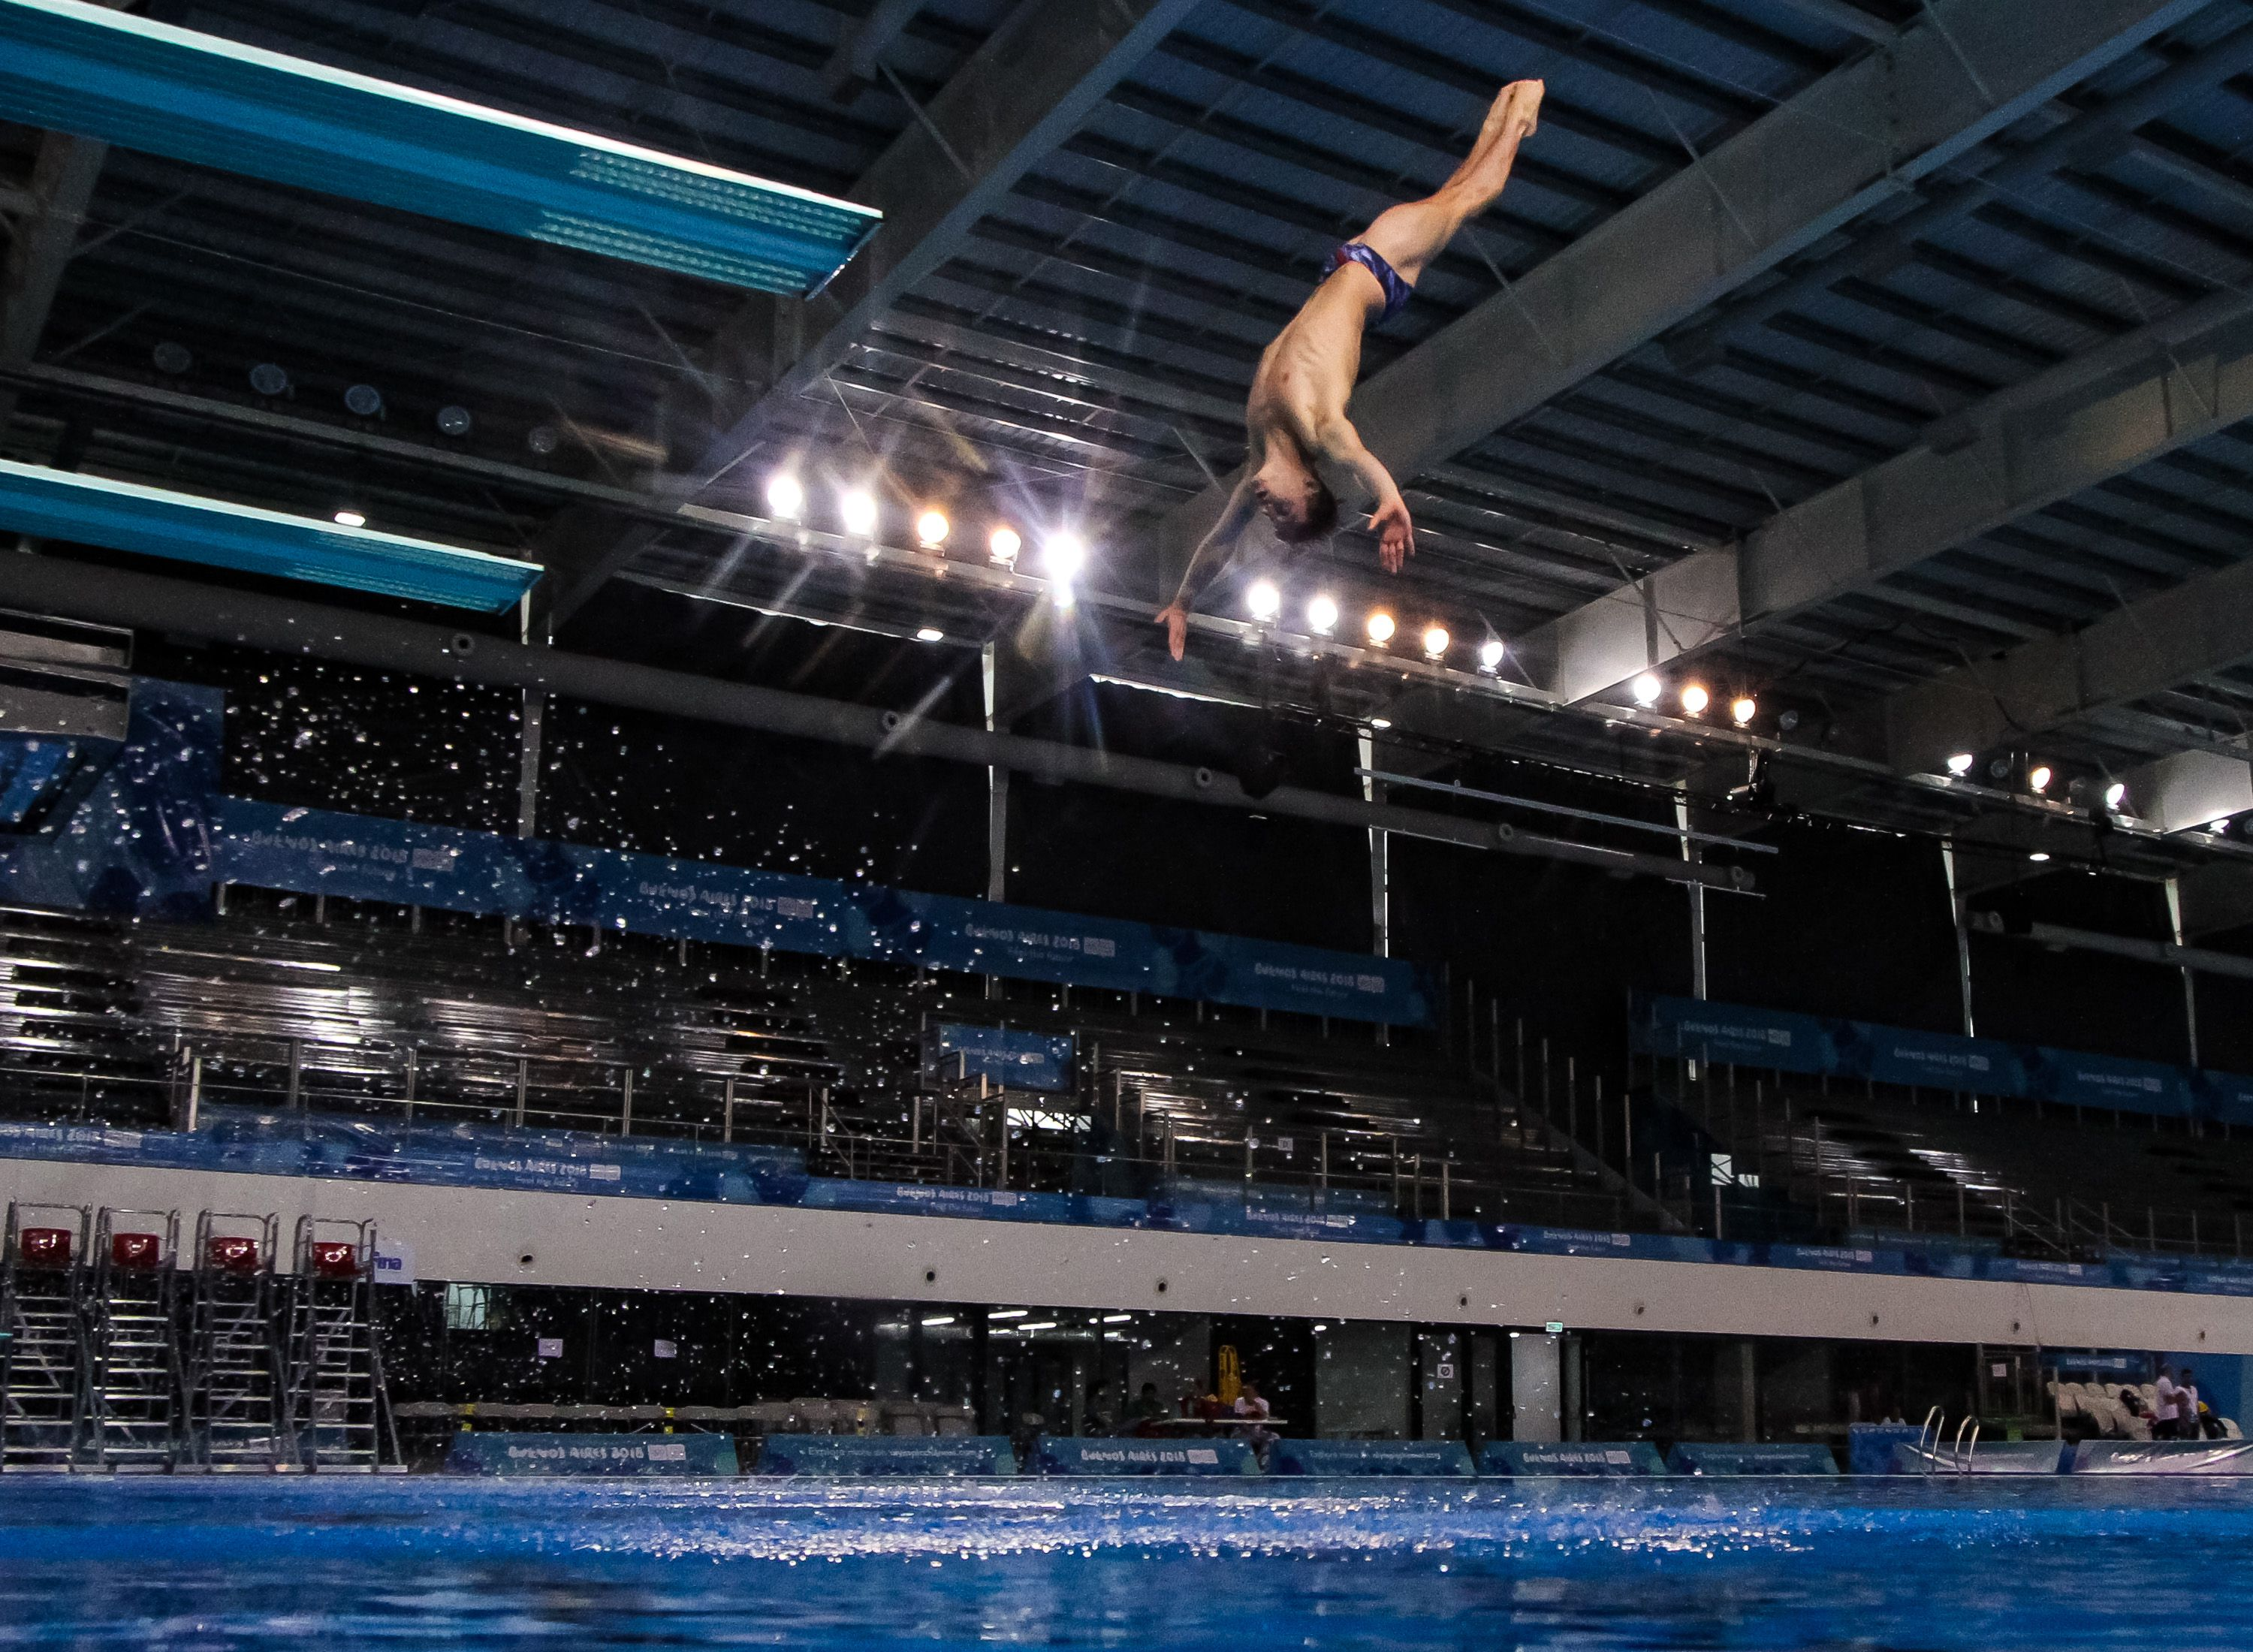 Diver in the middle of performing a reverse dive.